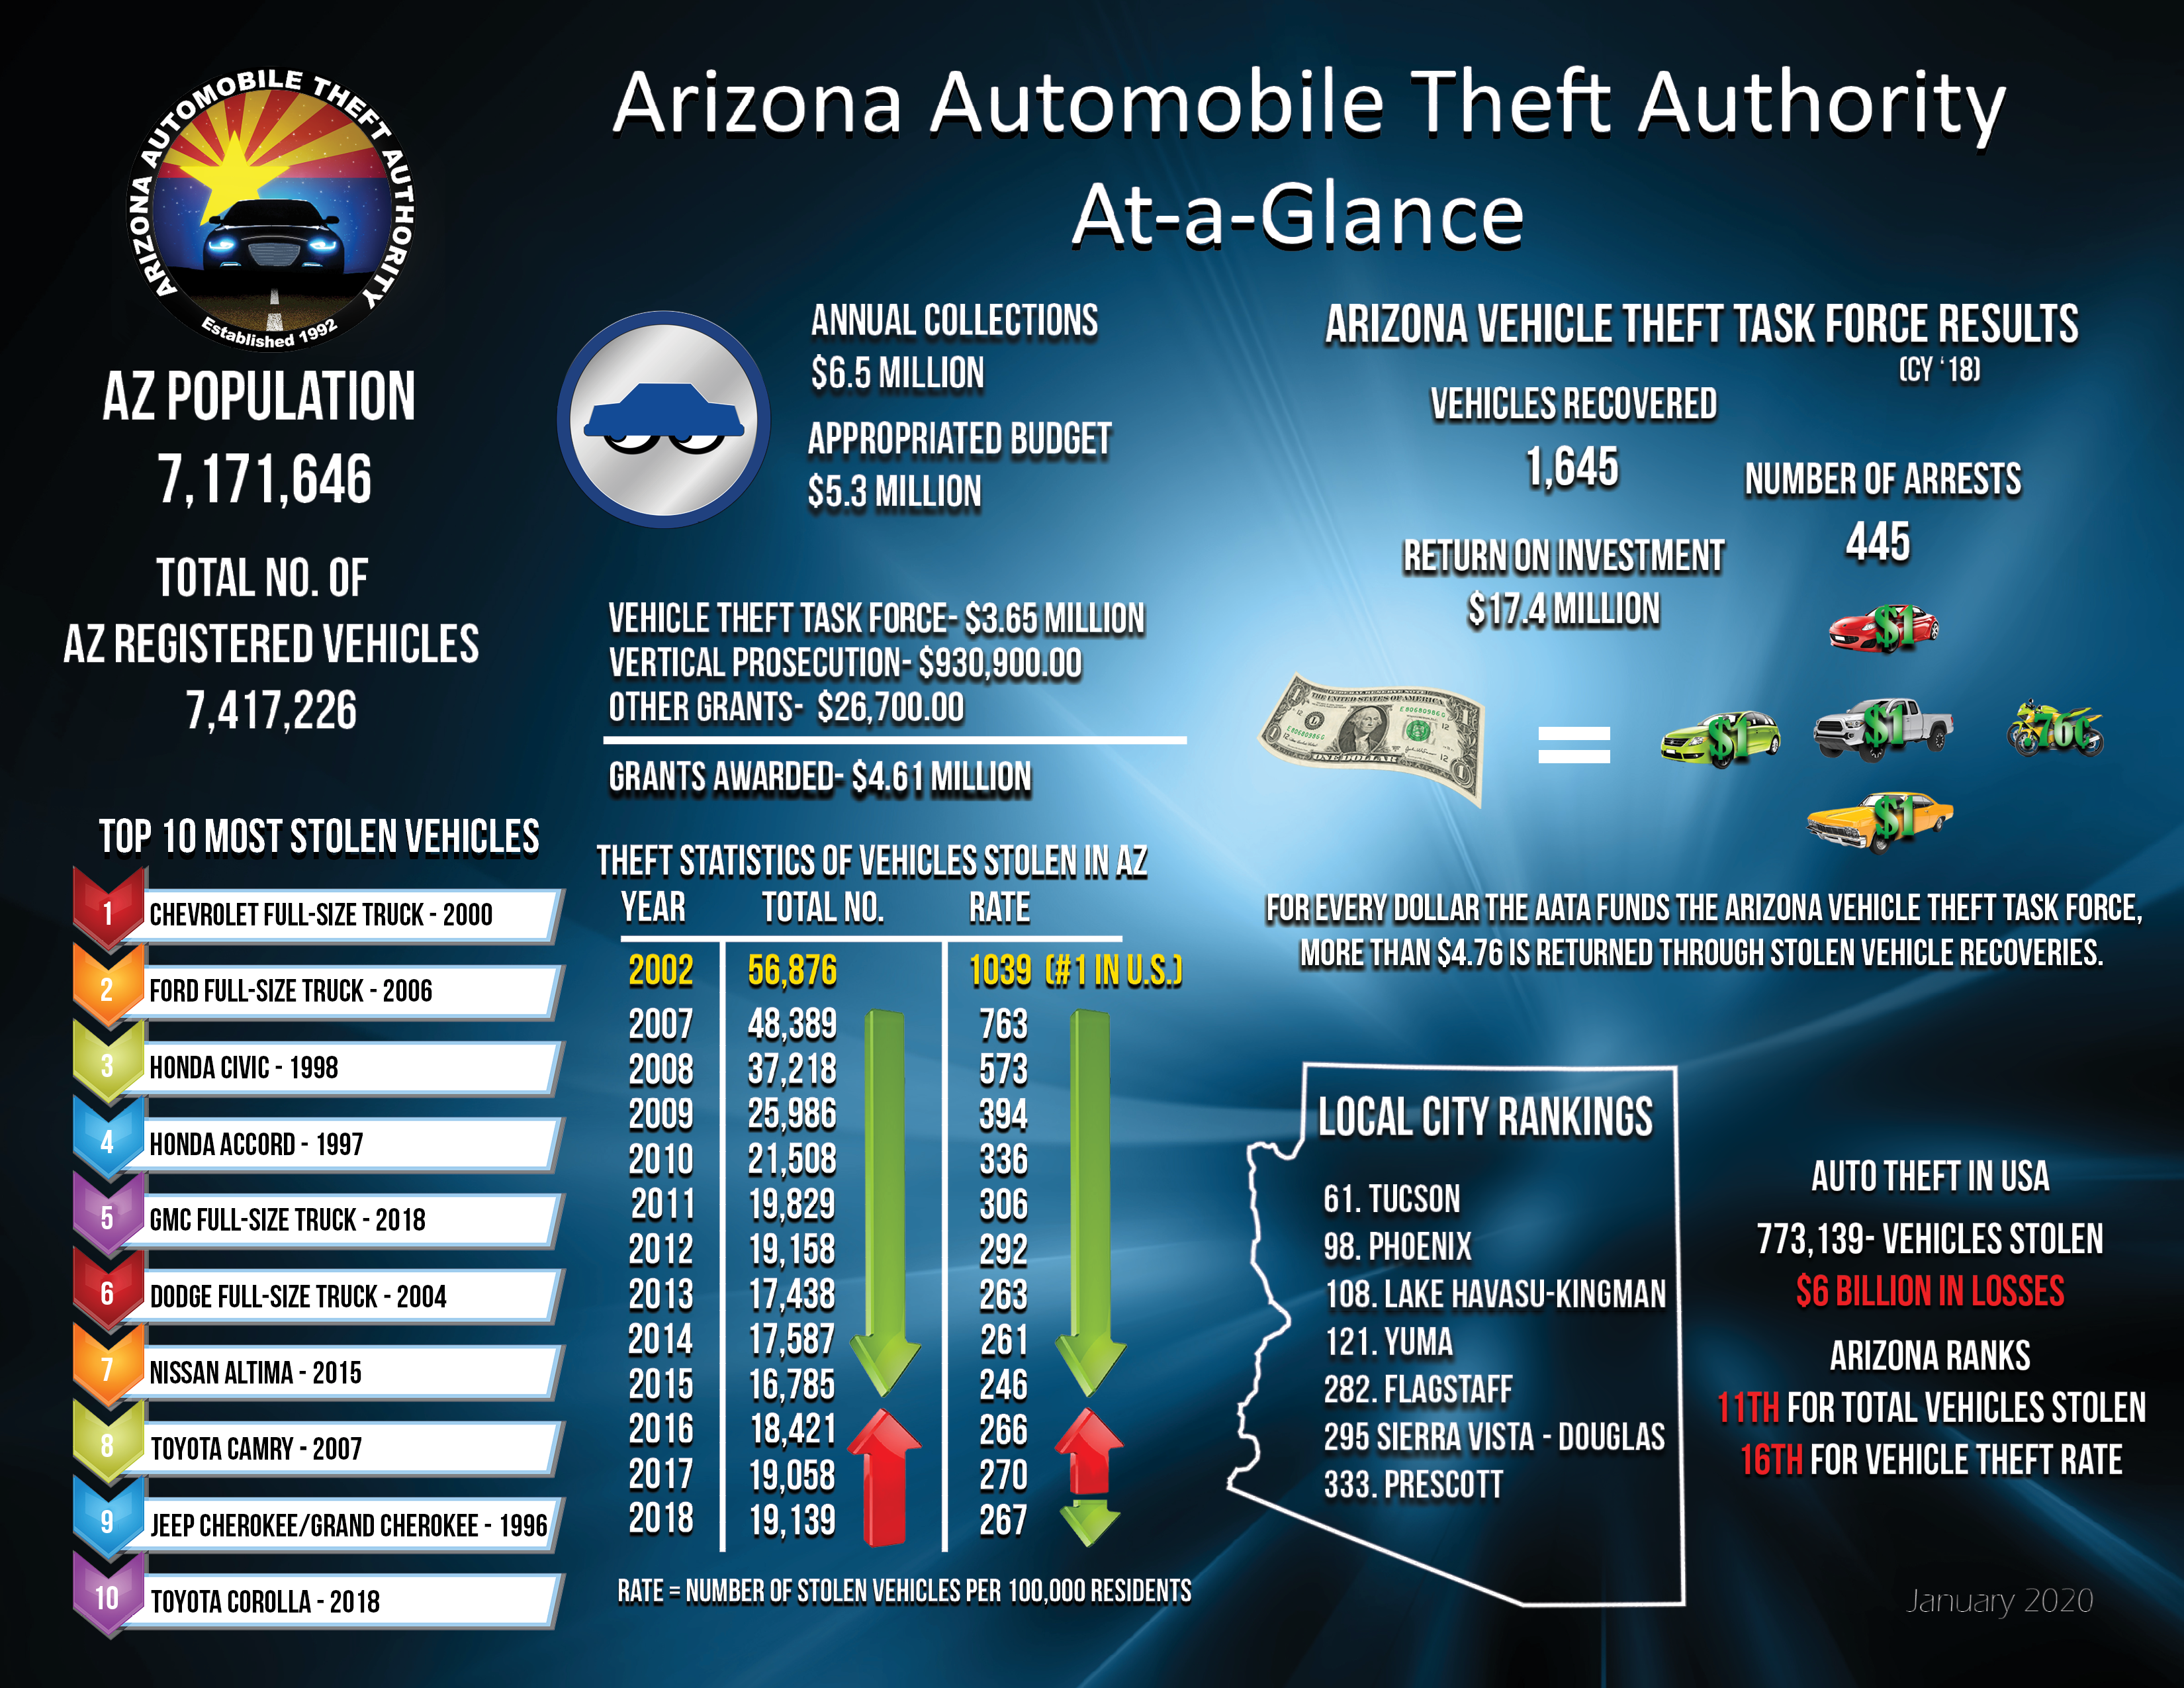 Arizona's Auto Theft situation at a glance.